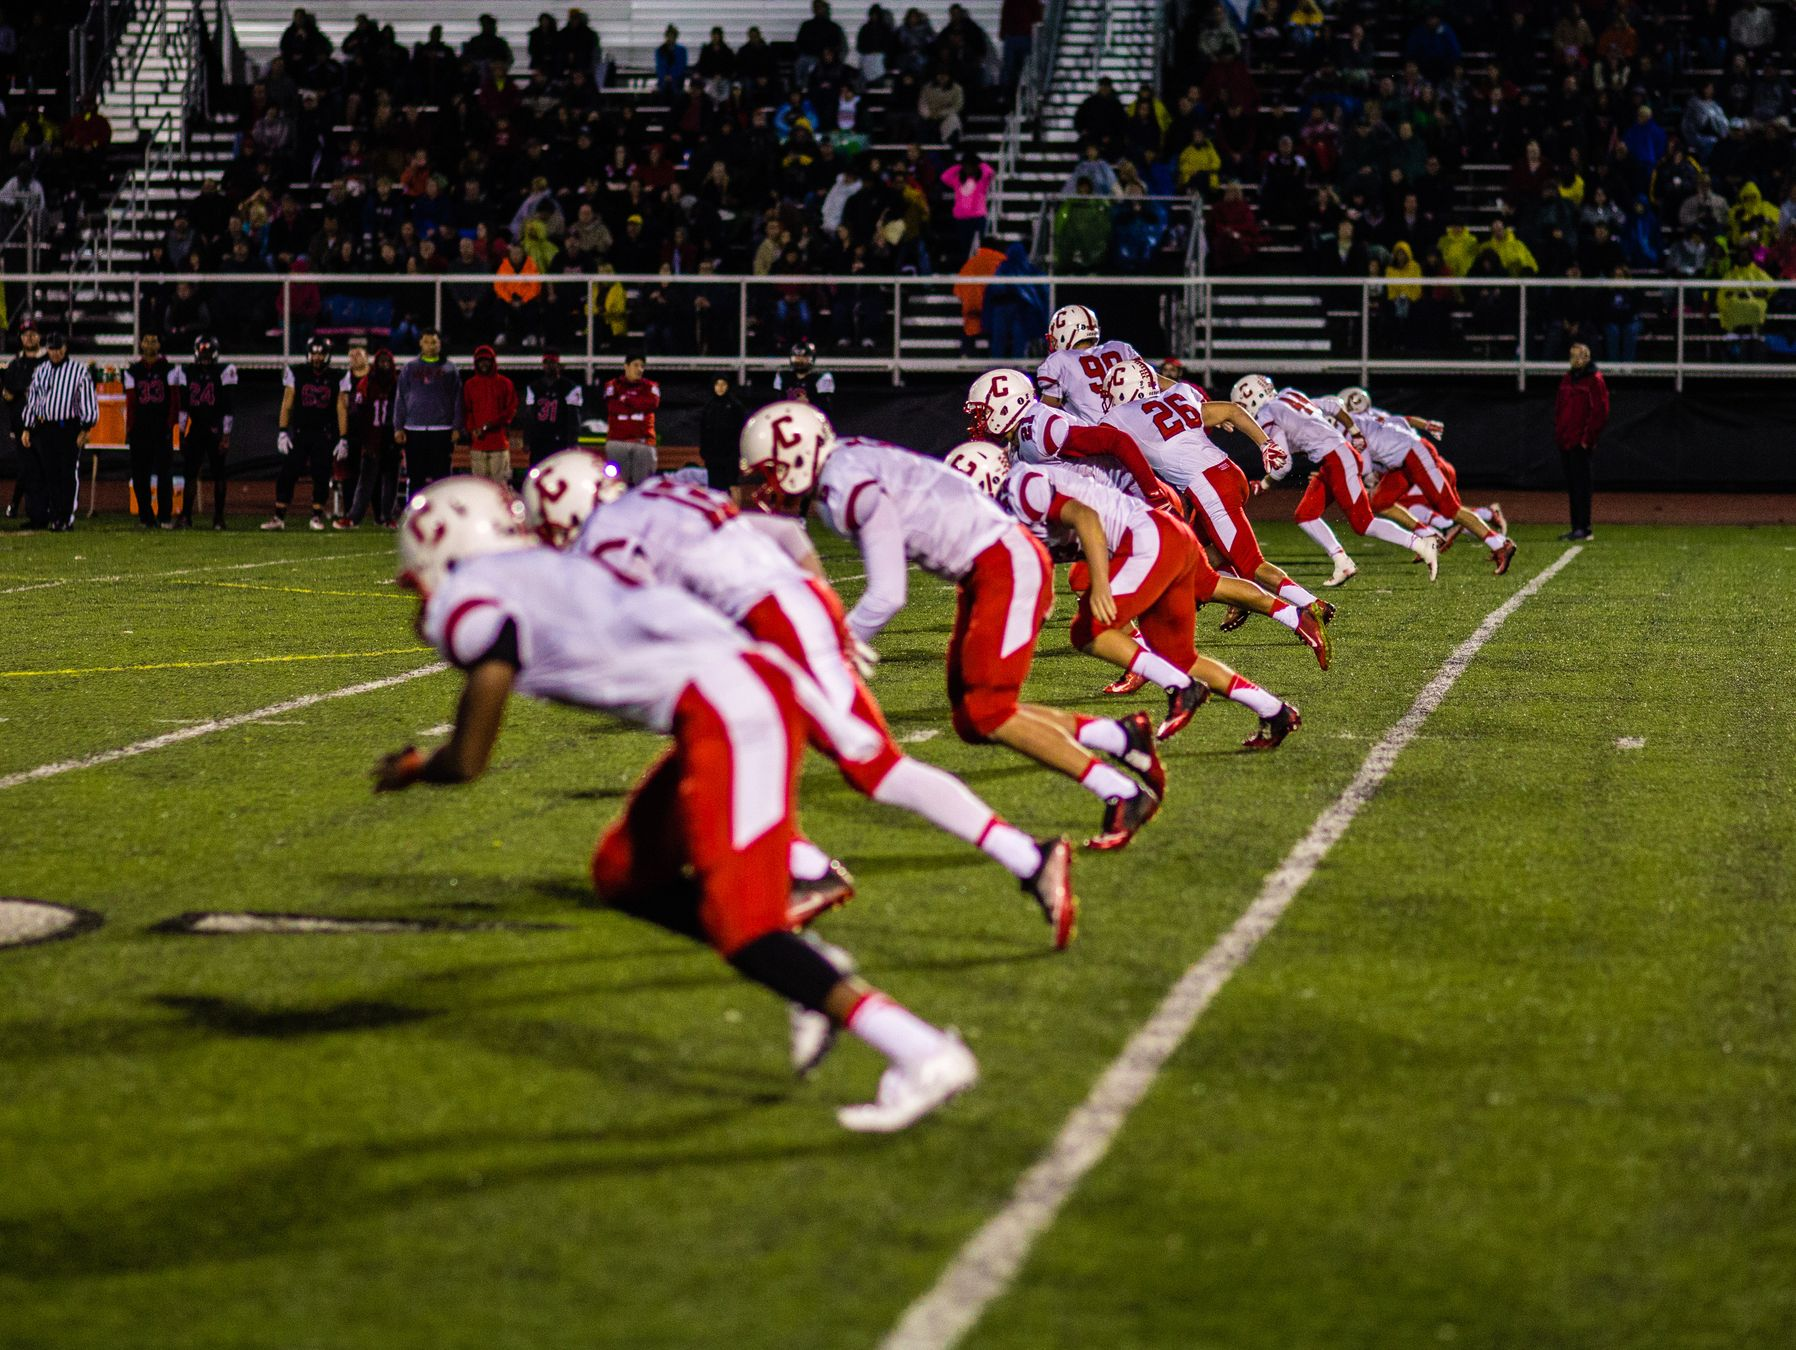 The Canton high school offensive line chases a kickoff during a game against Livonia Churchill on Friday.